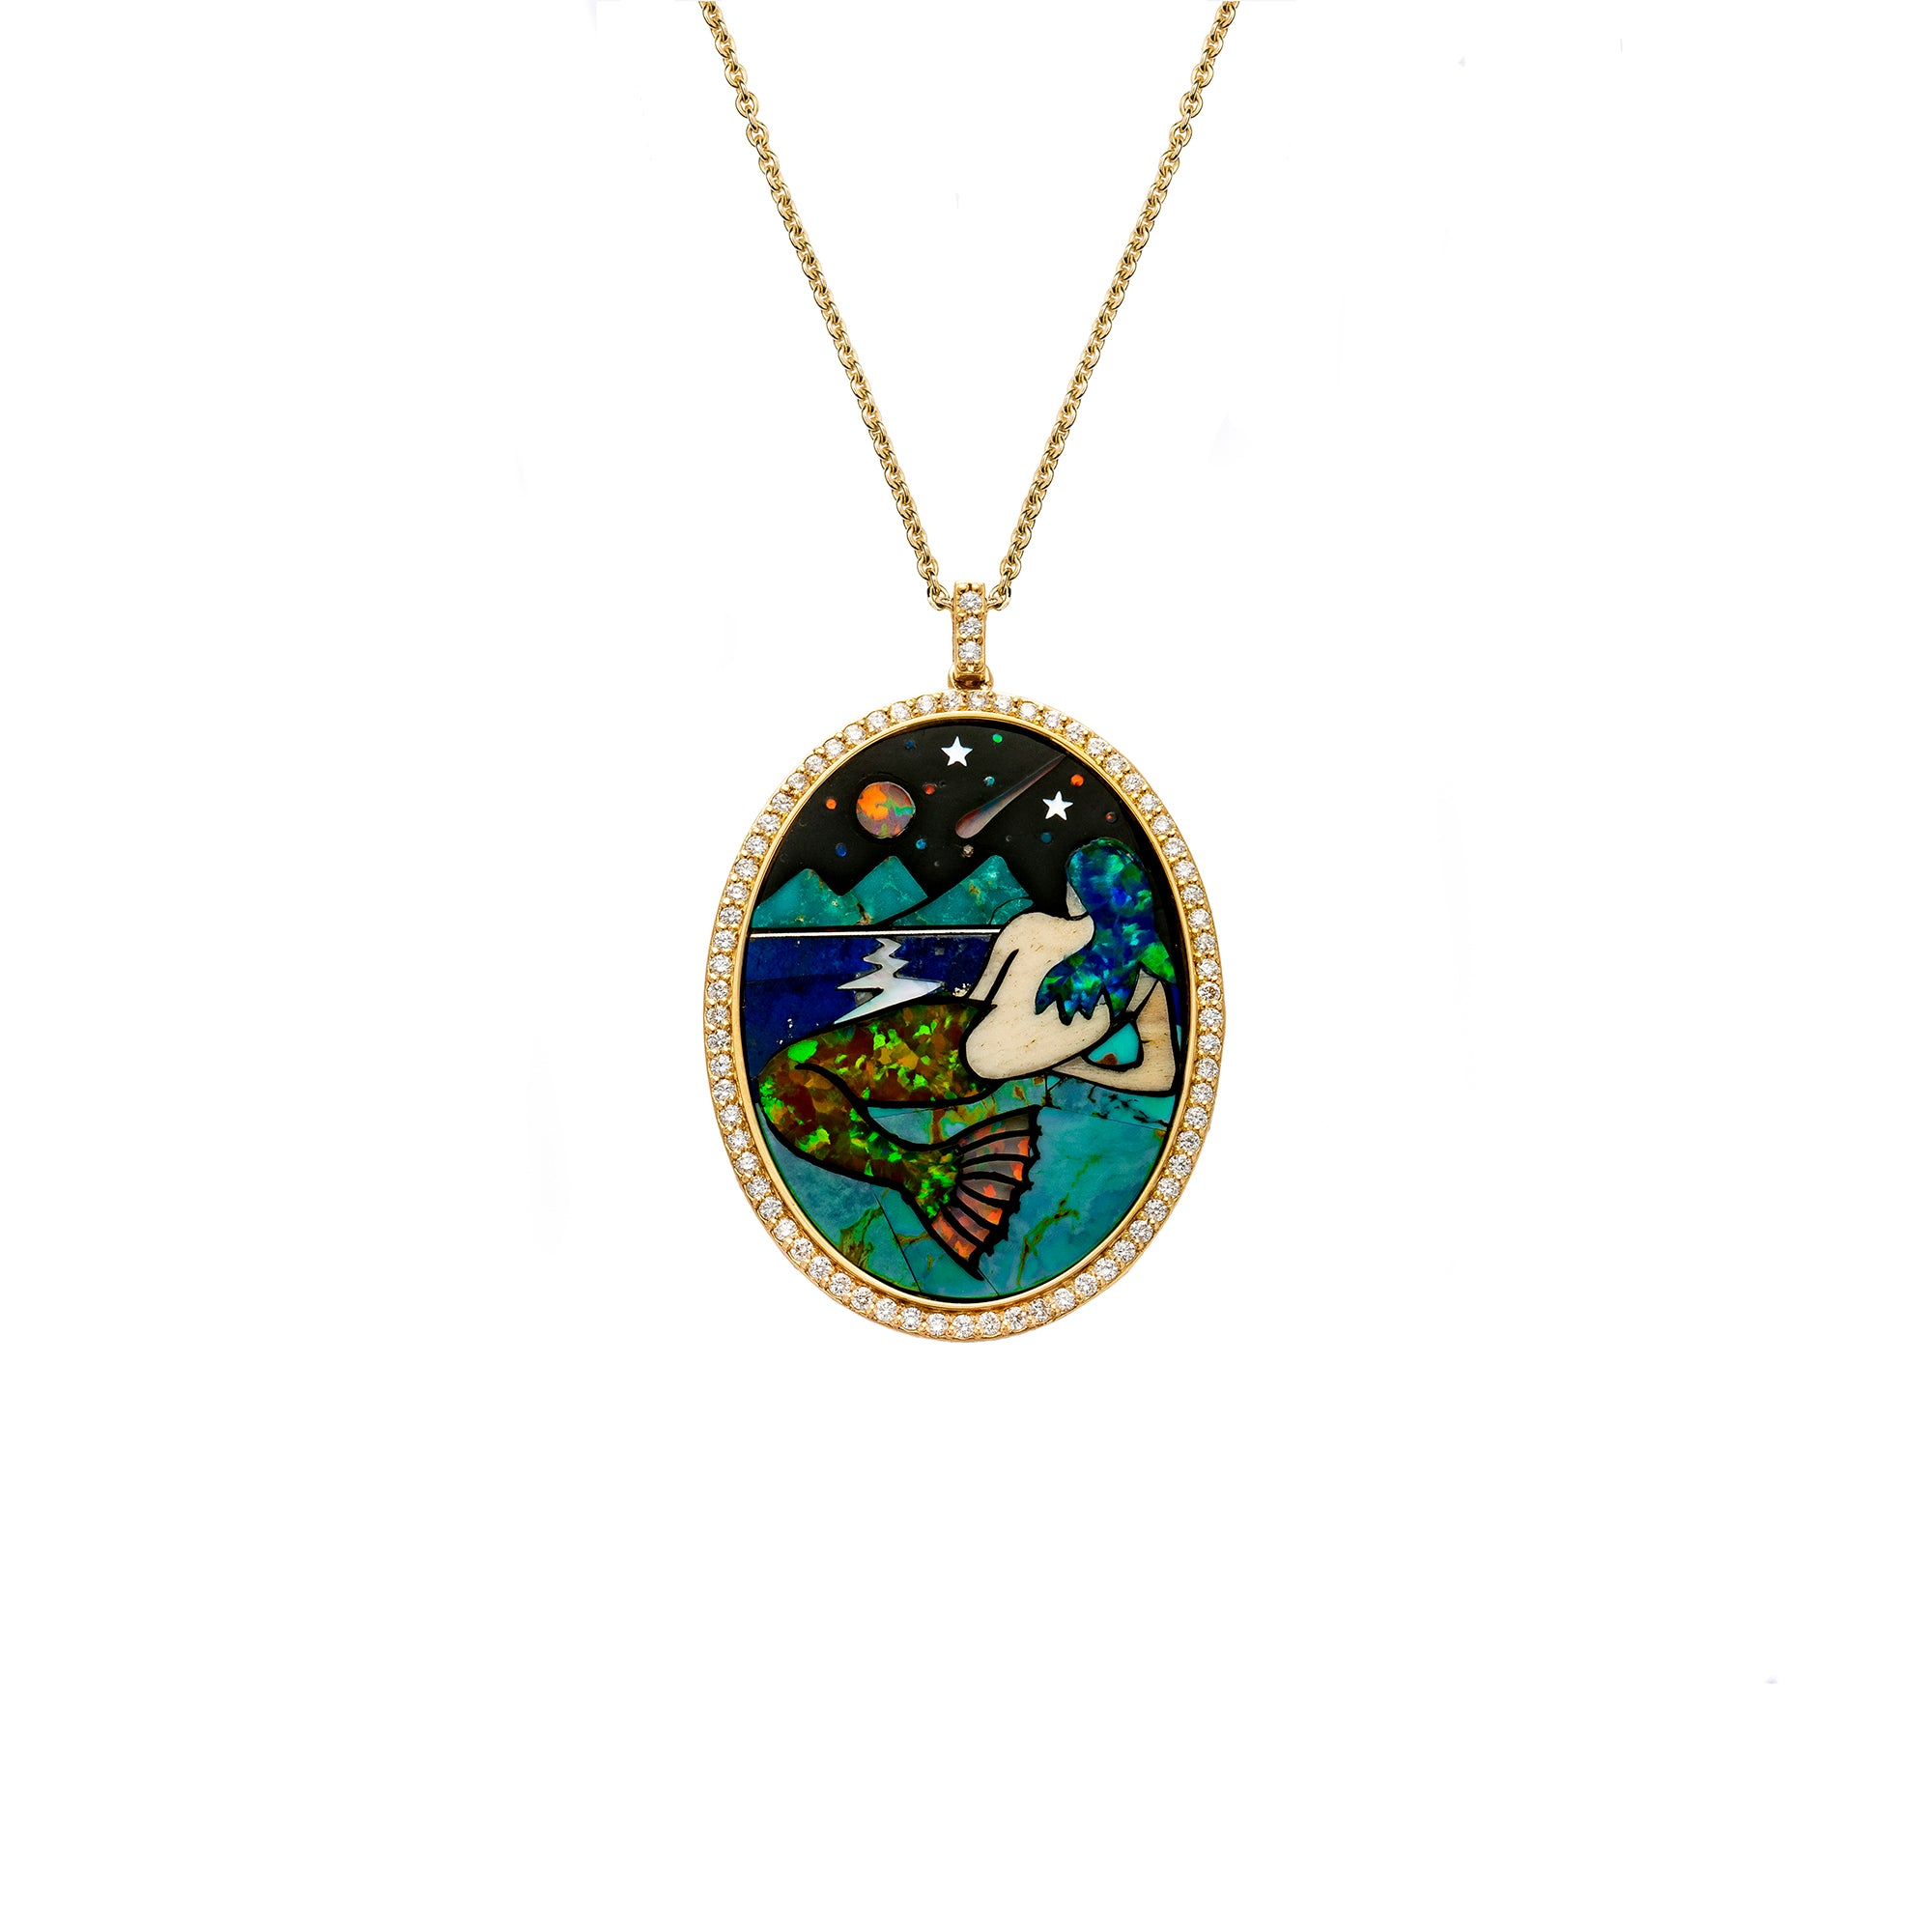 Jenny Dee Cosmic Mermaid Necklace - Necklaces - Broken English Jewelry